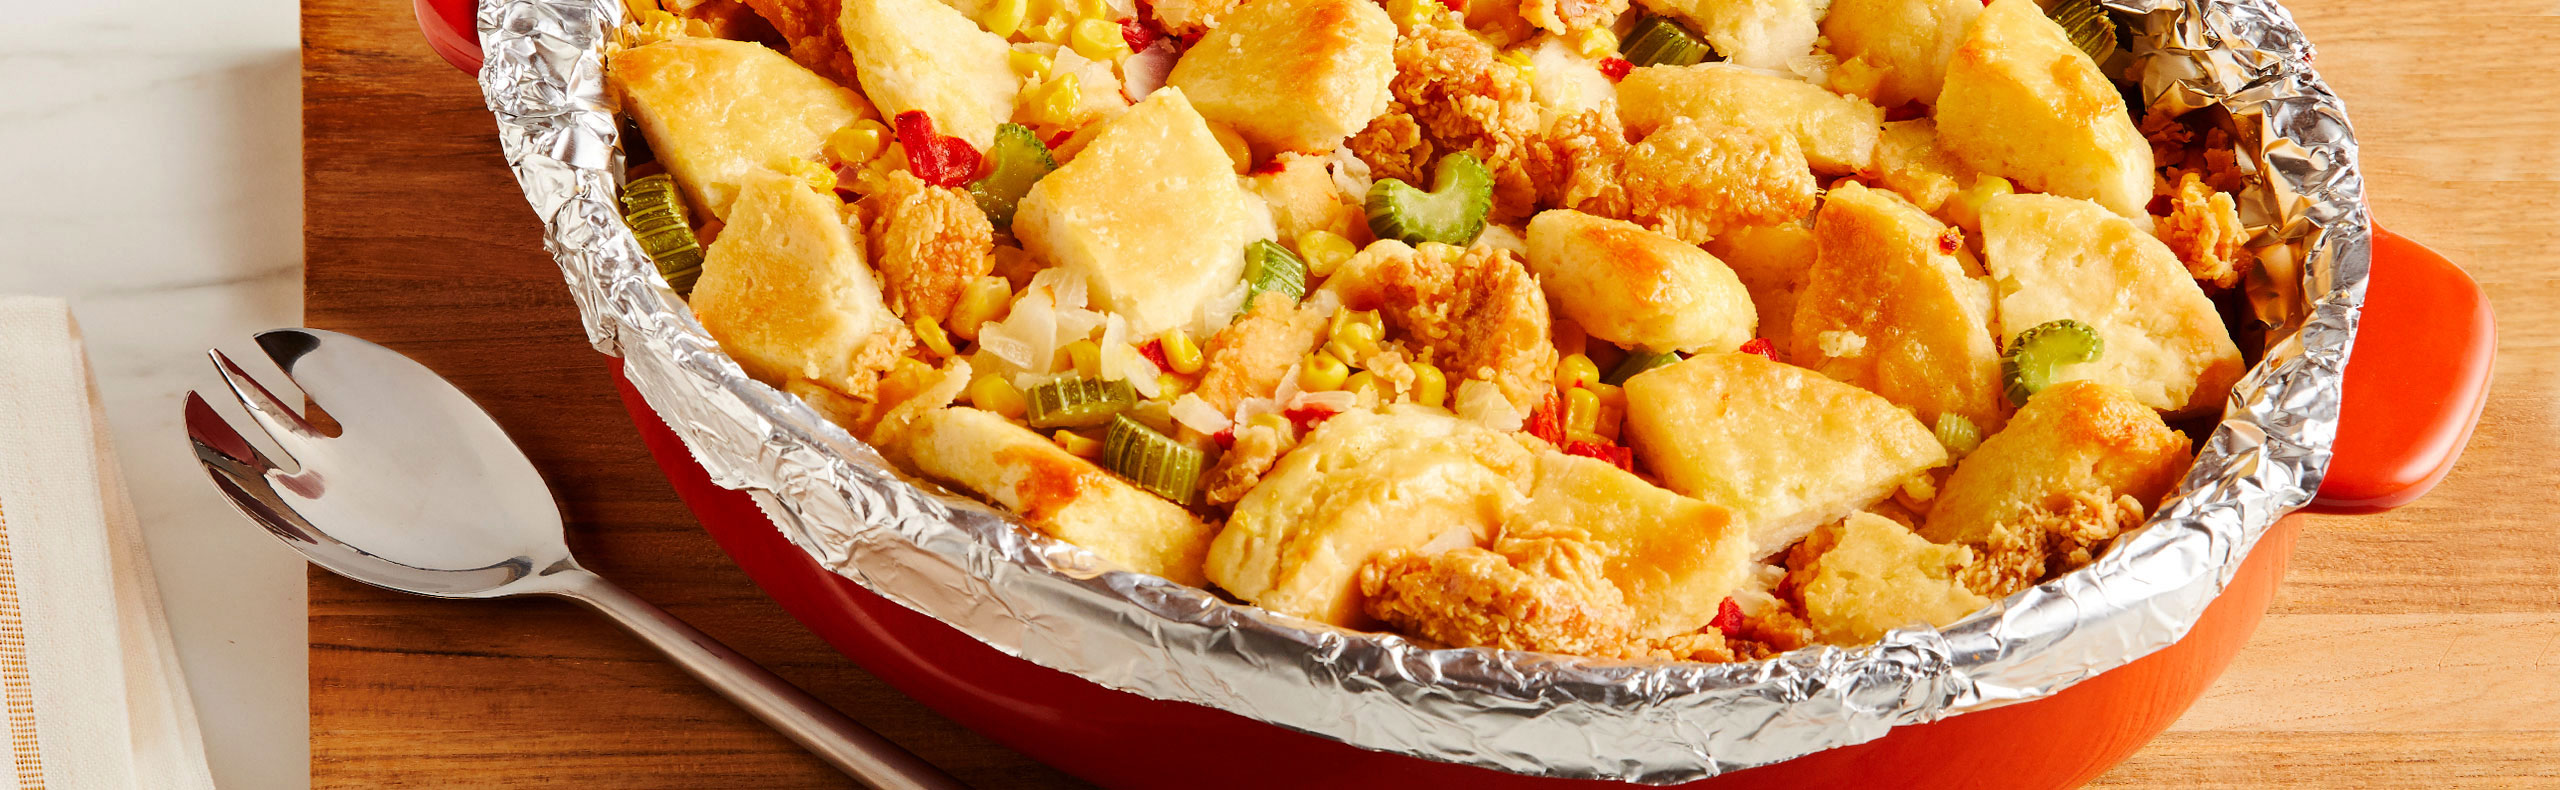 Fried Chicken & Biscuit Stuffing